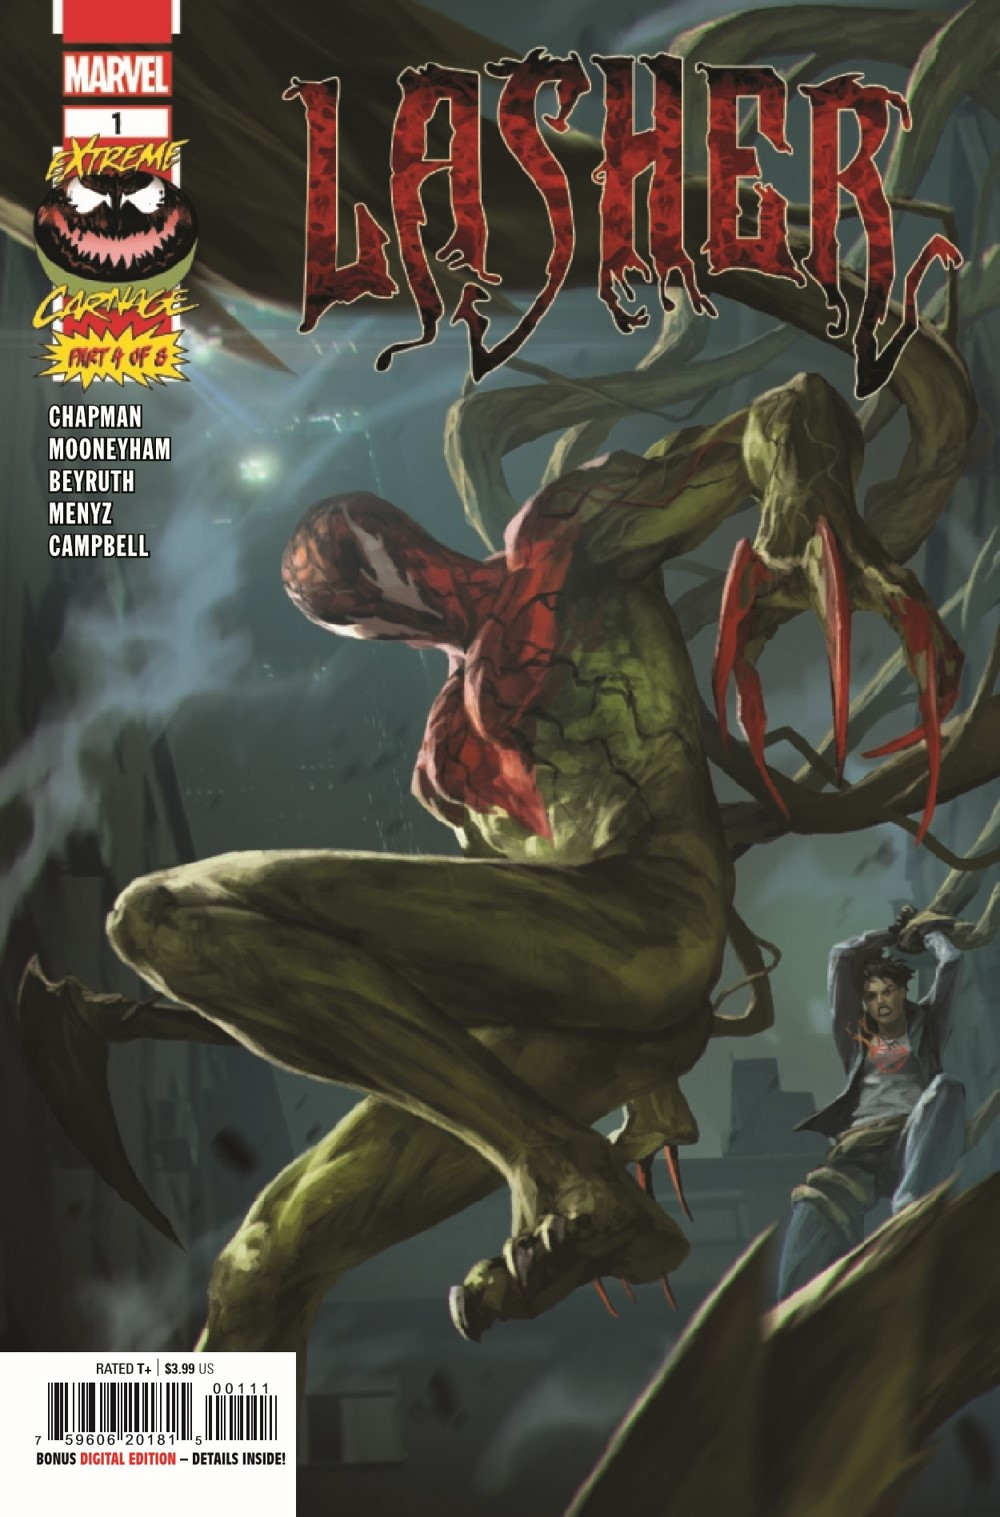 EXTCARNLA2021001_Preview-1 ComicList Previews: EXTREME CARNAGE LASHER #1